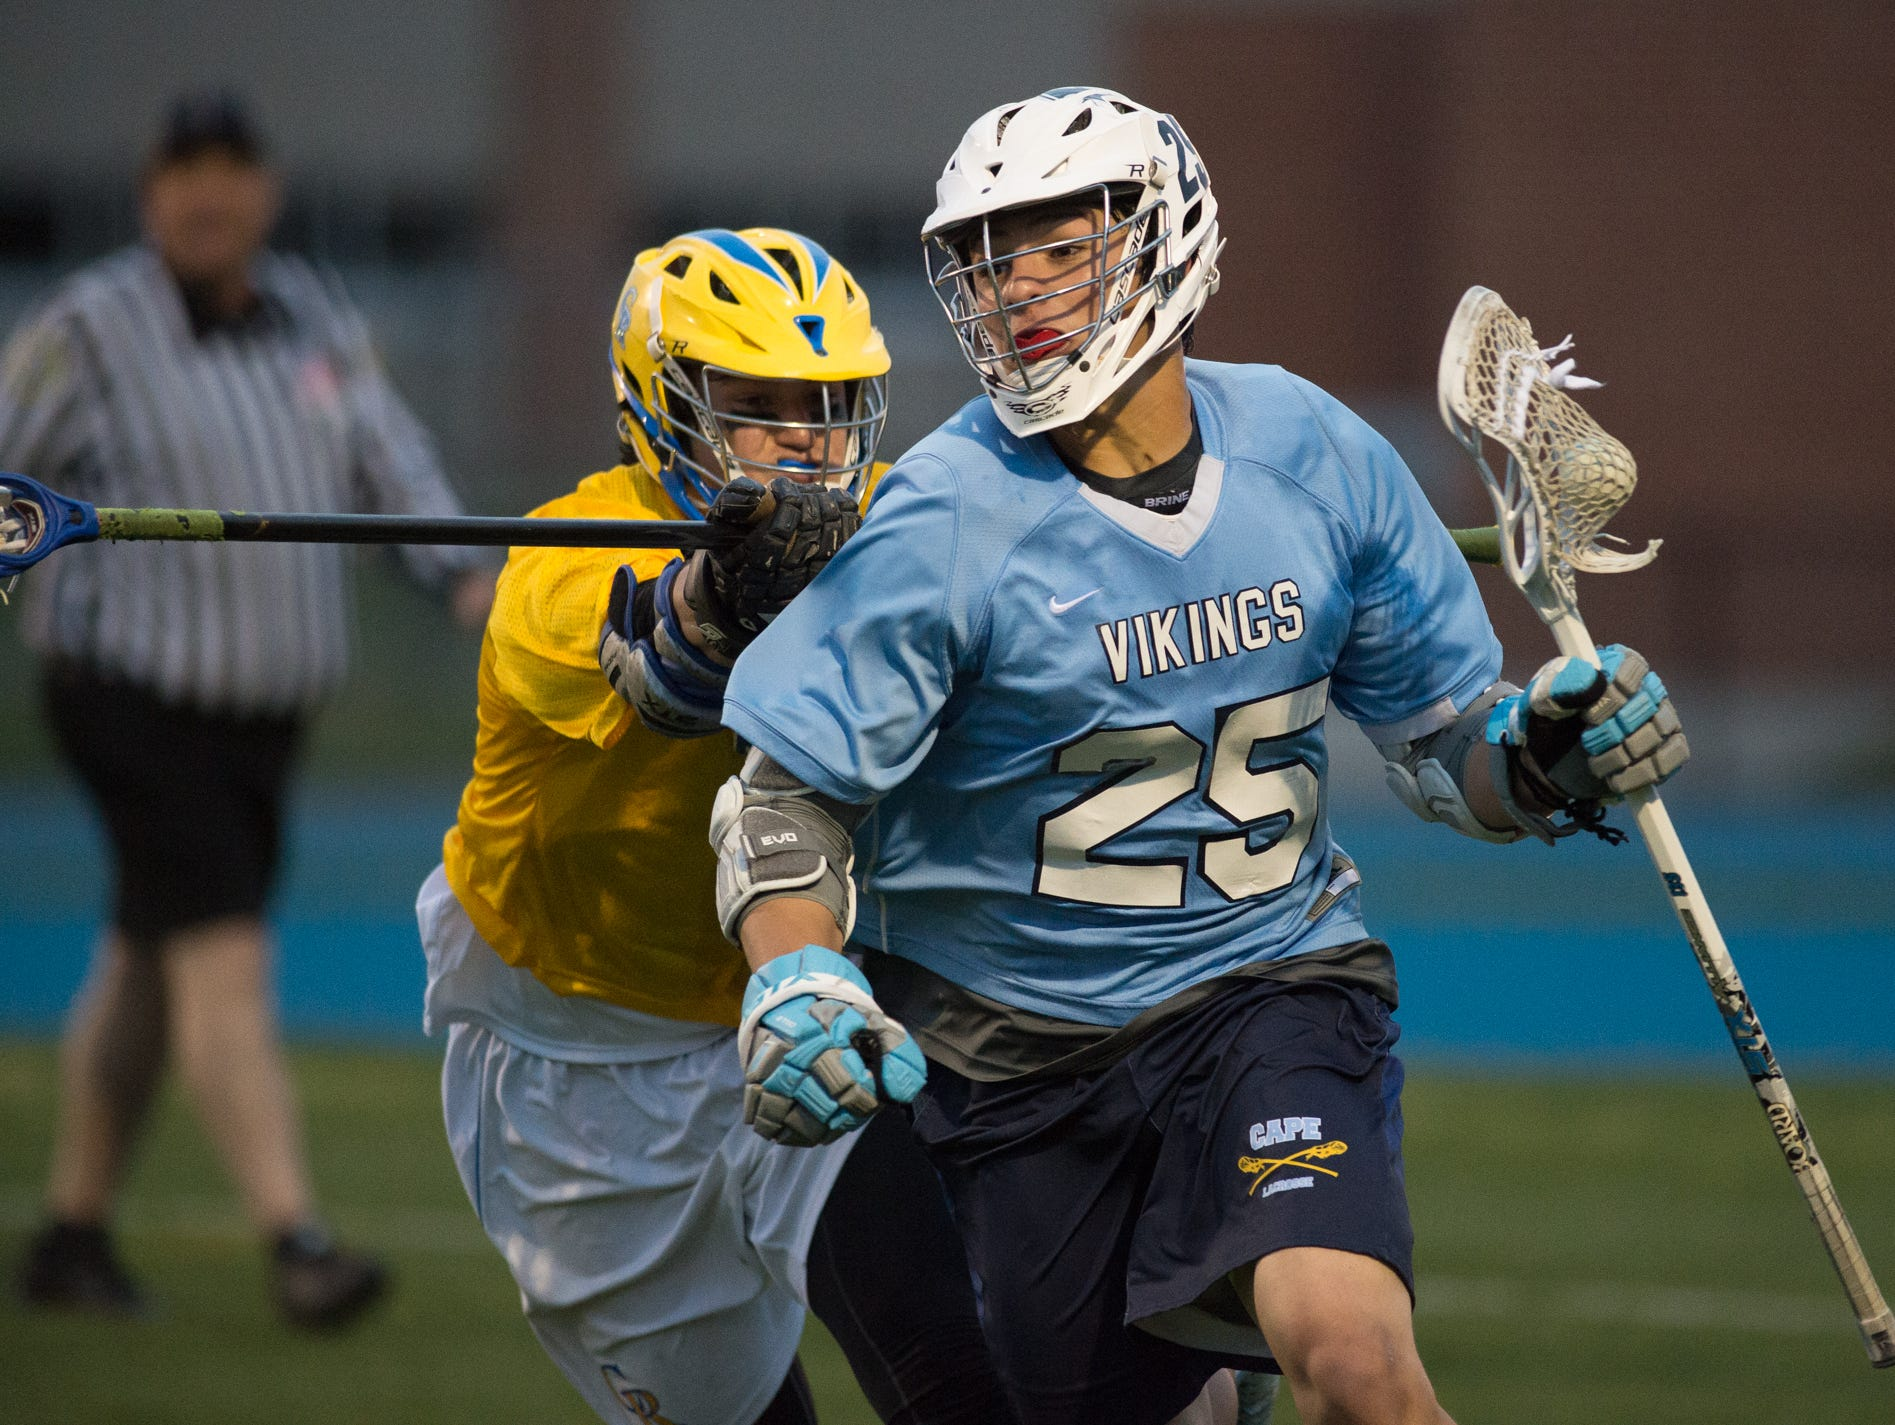 Cape Henlopen's Erik-Stephane Stancofski (25) is hit from behind as he runs with the ball in their game against Caesar Rodney.